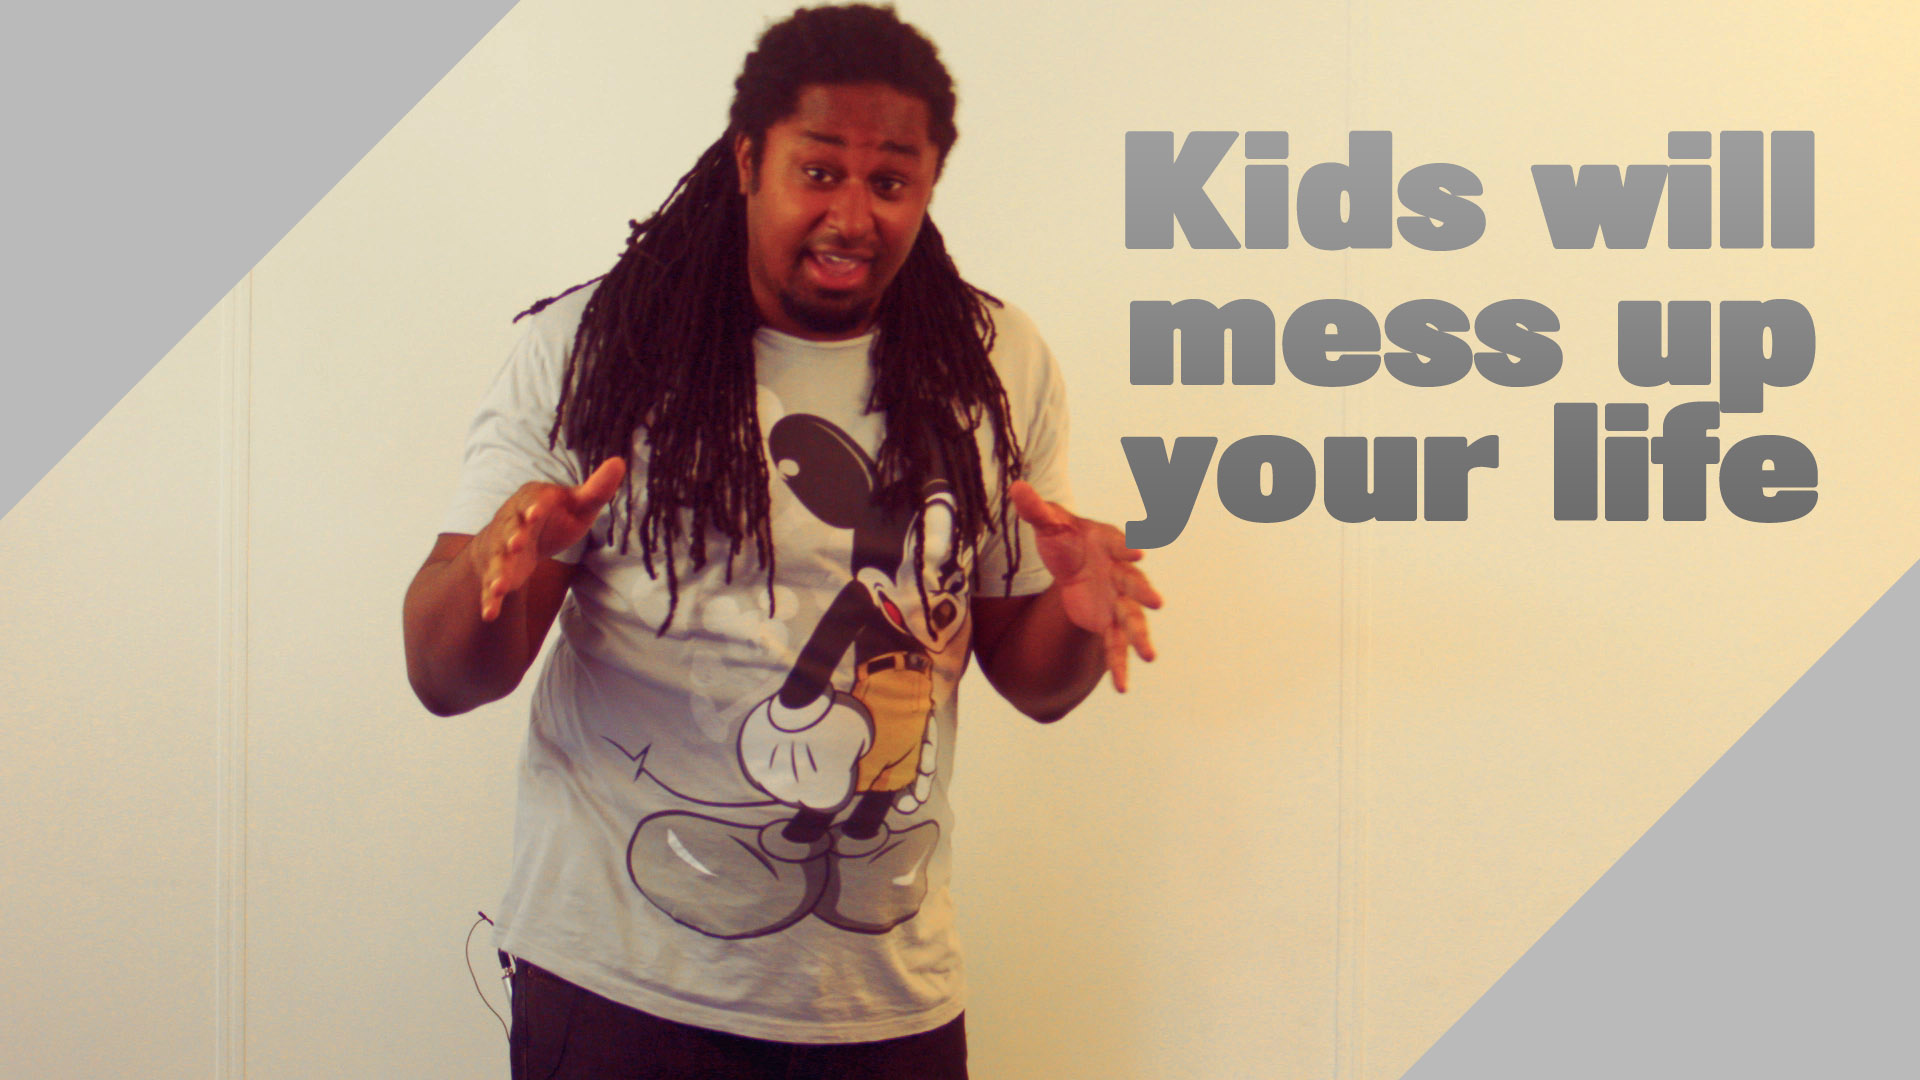 Kids will mess up your life